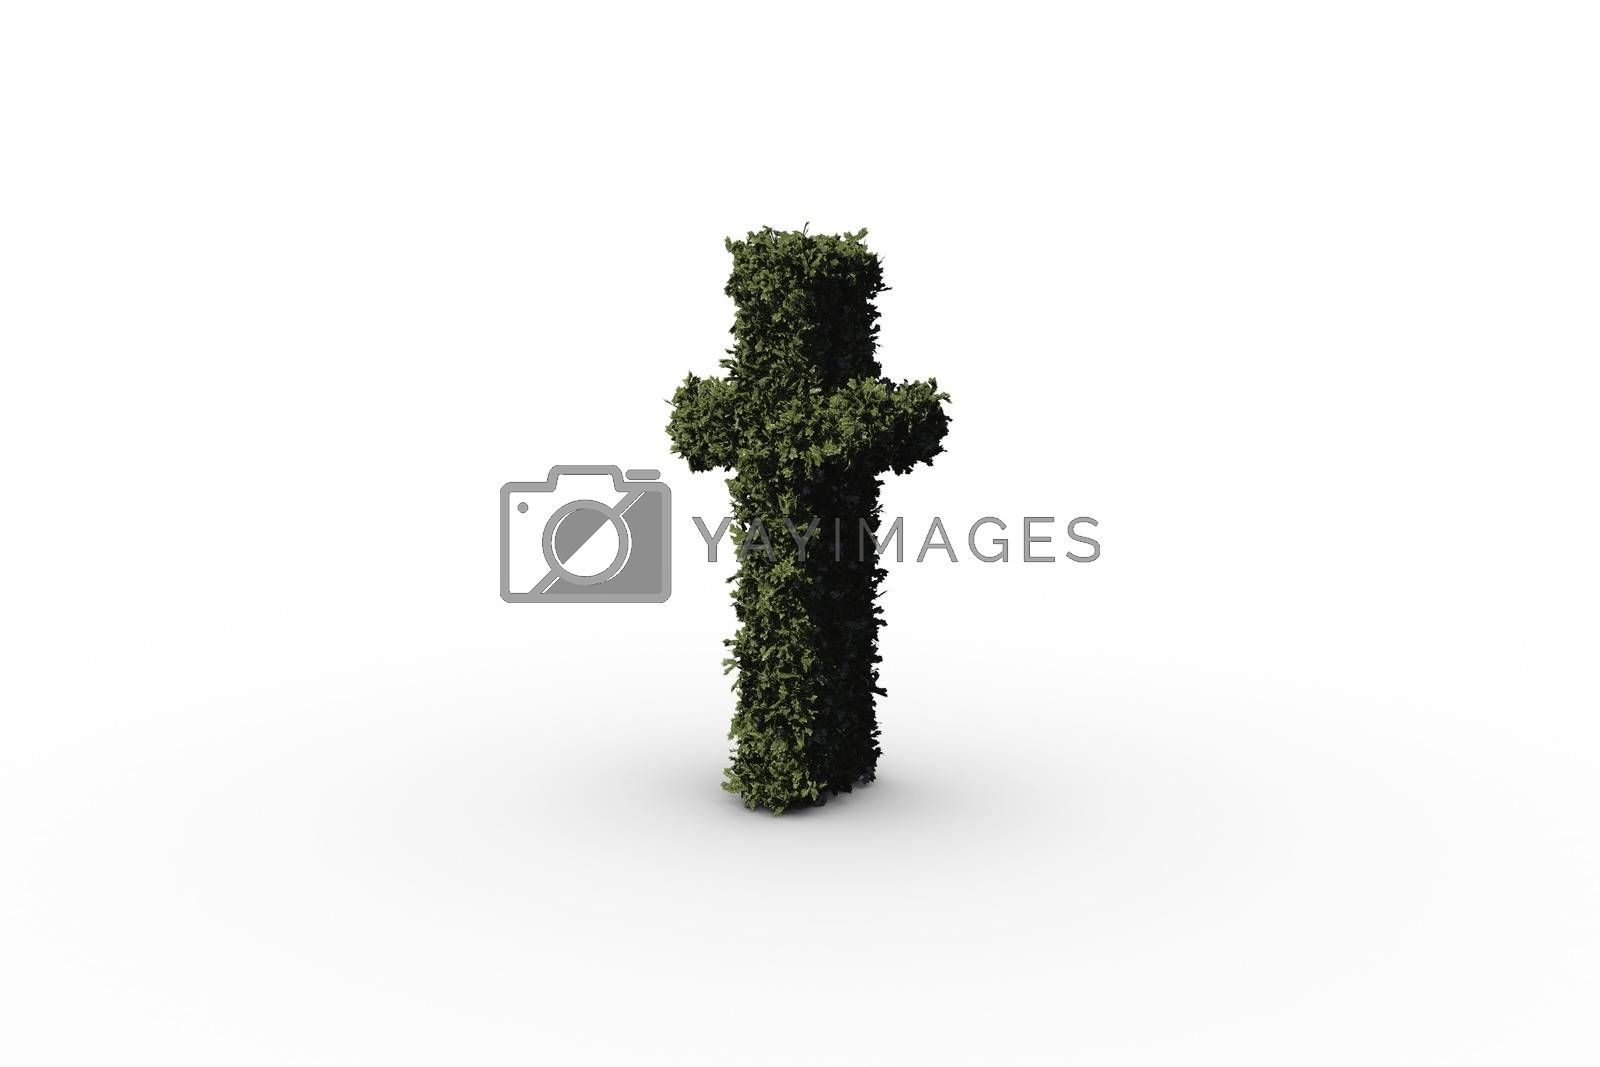 Royalty free image of Lower case letter t made of leaves by Wavebreakmedia